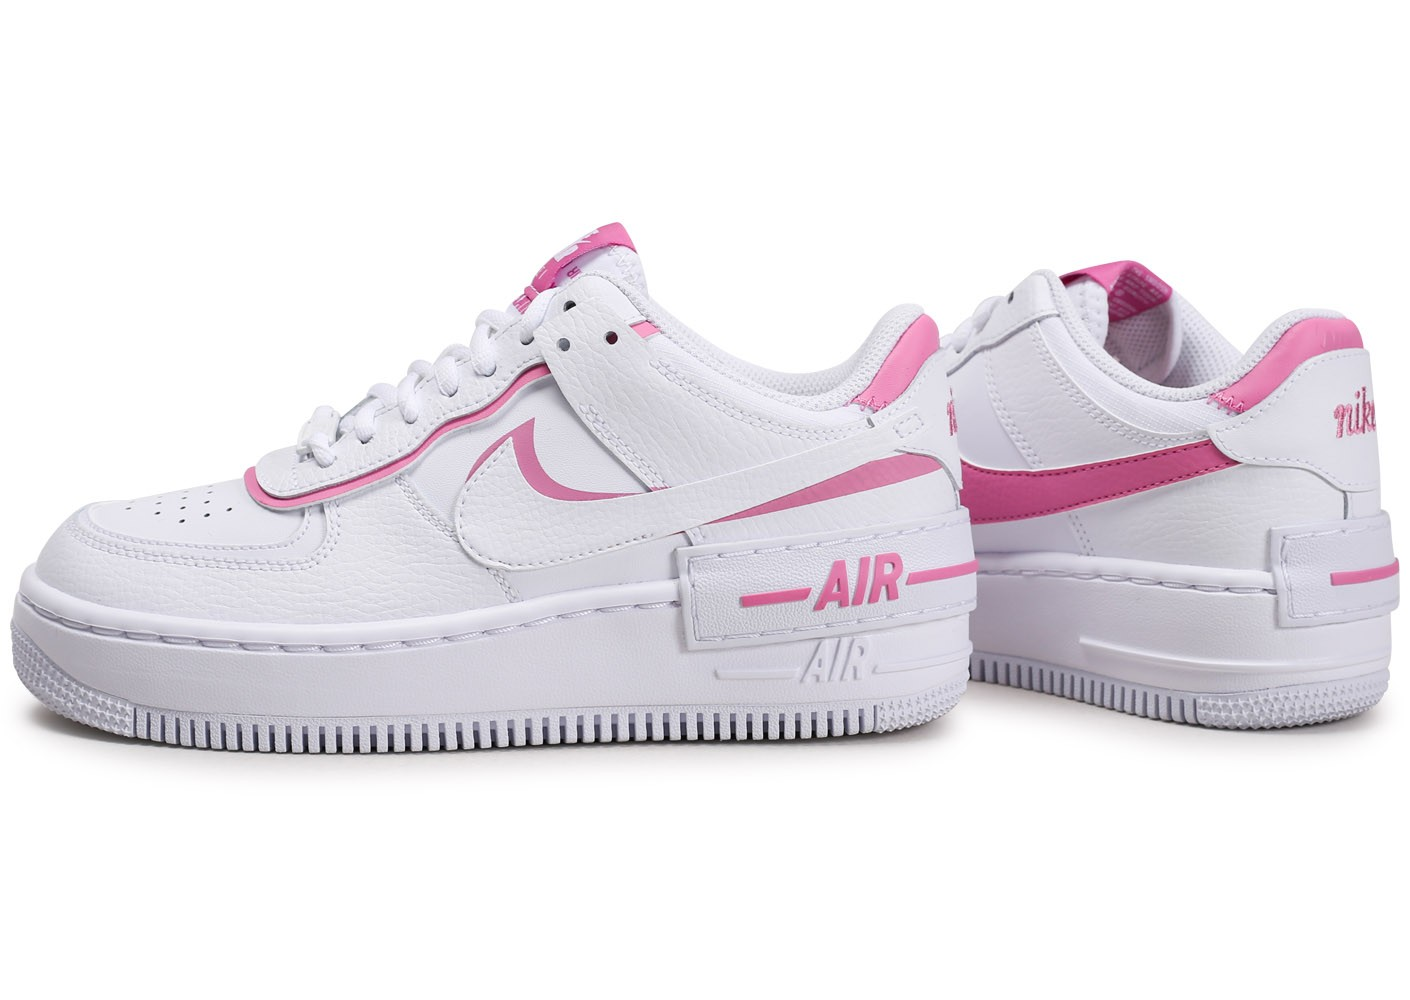 Nike Air Force 1 Shadow blanc rose Femme - Chaussures ...